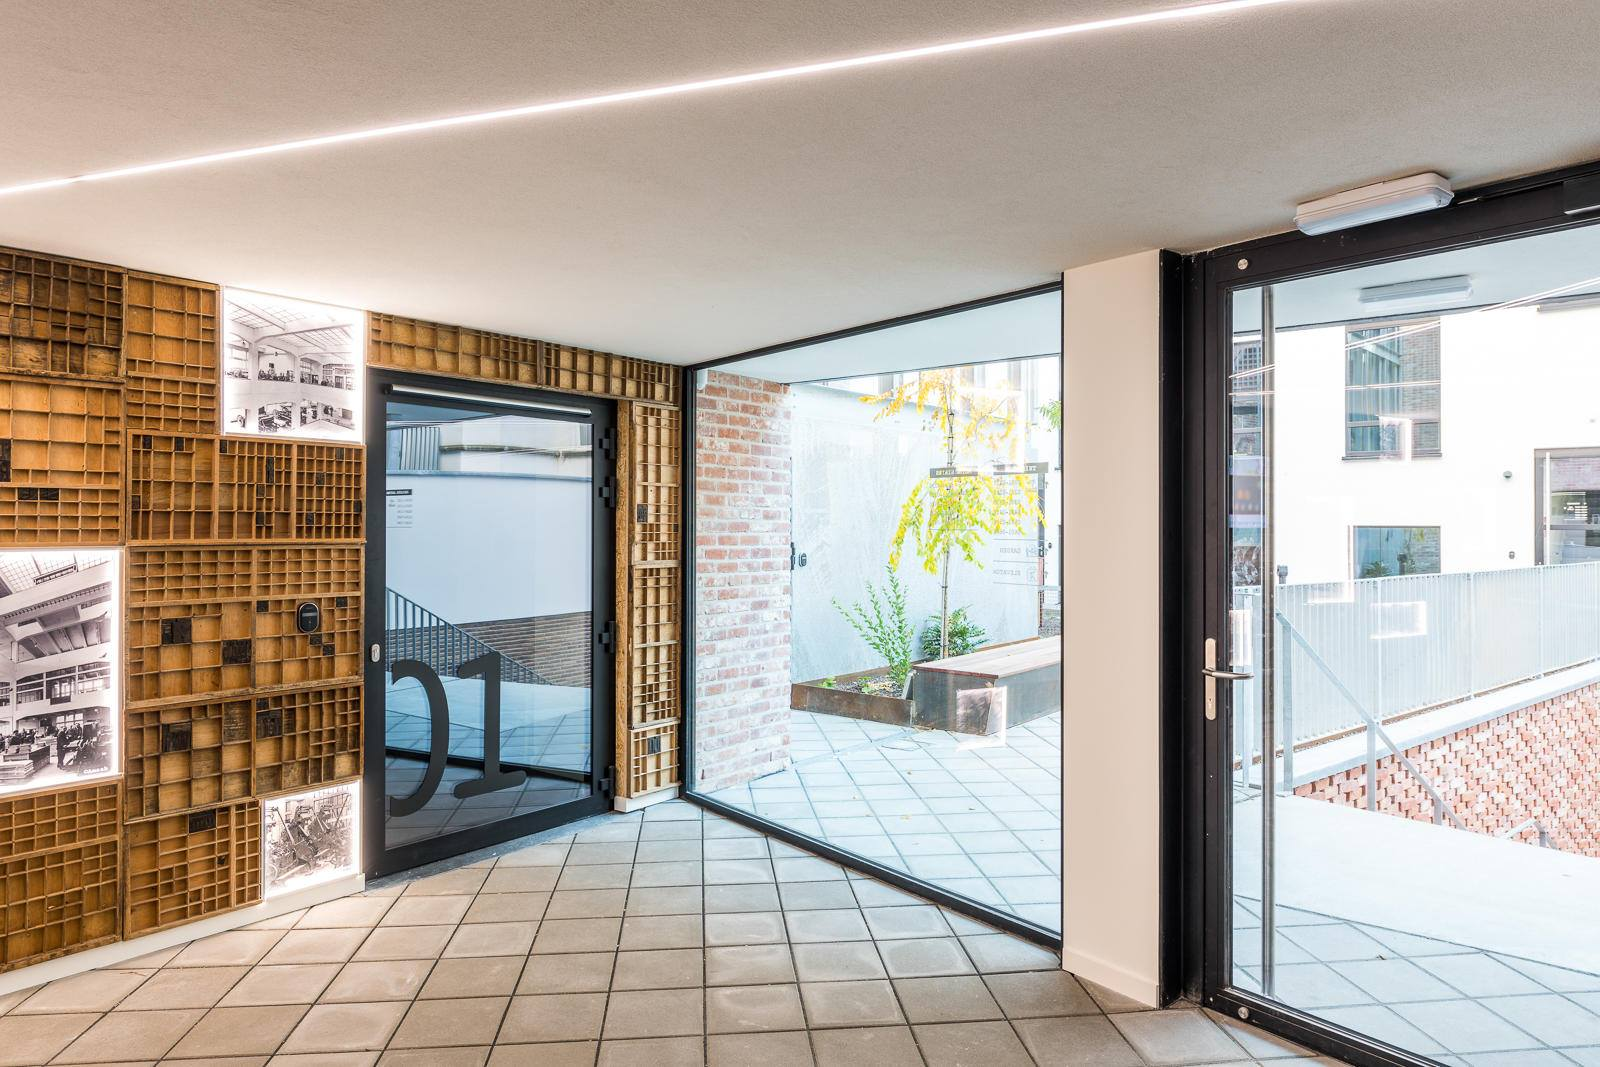 43691918 1900267830059553 3435067590110609408 o | Baeyens & Beck architecten Gent | architect nieuwbouw renovatie interieur | high end | architectenbureau